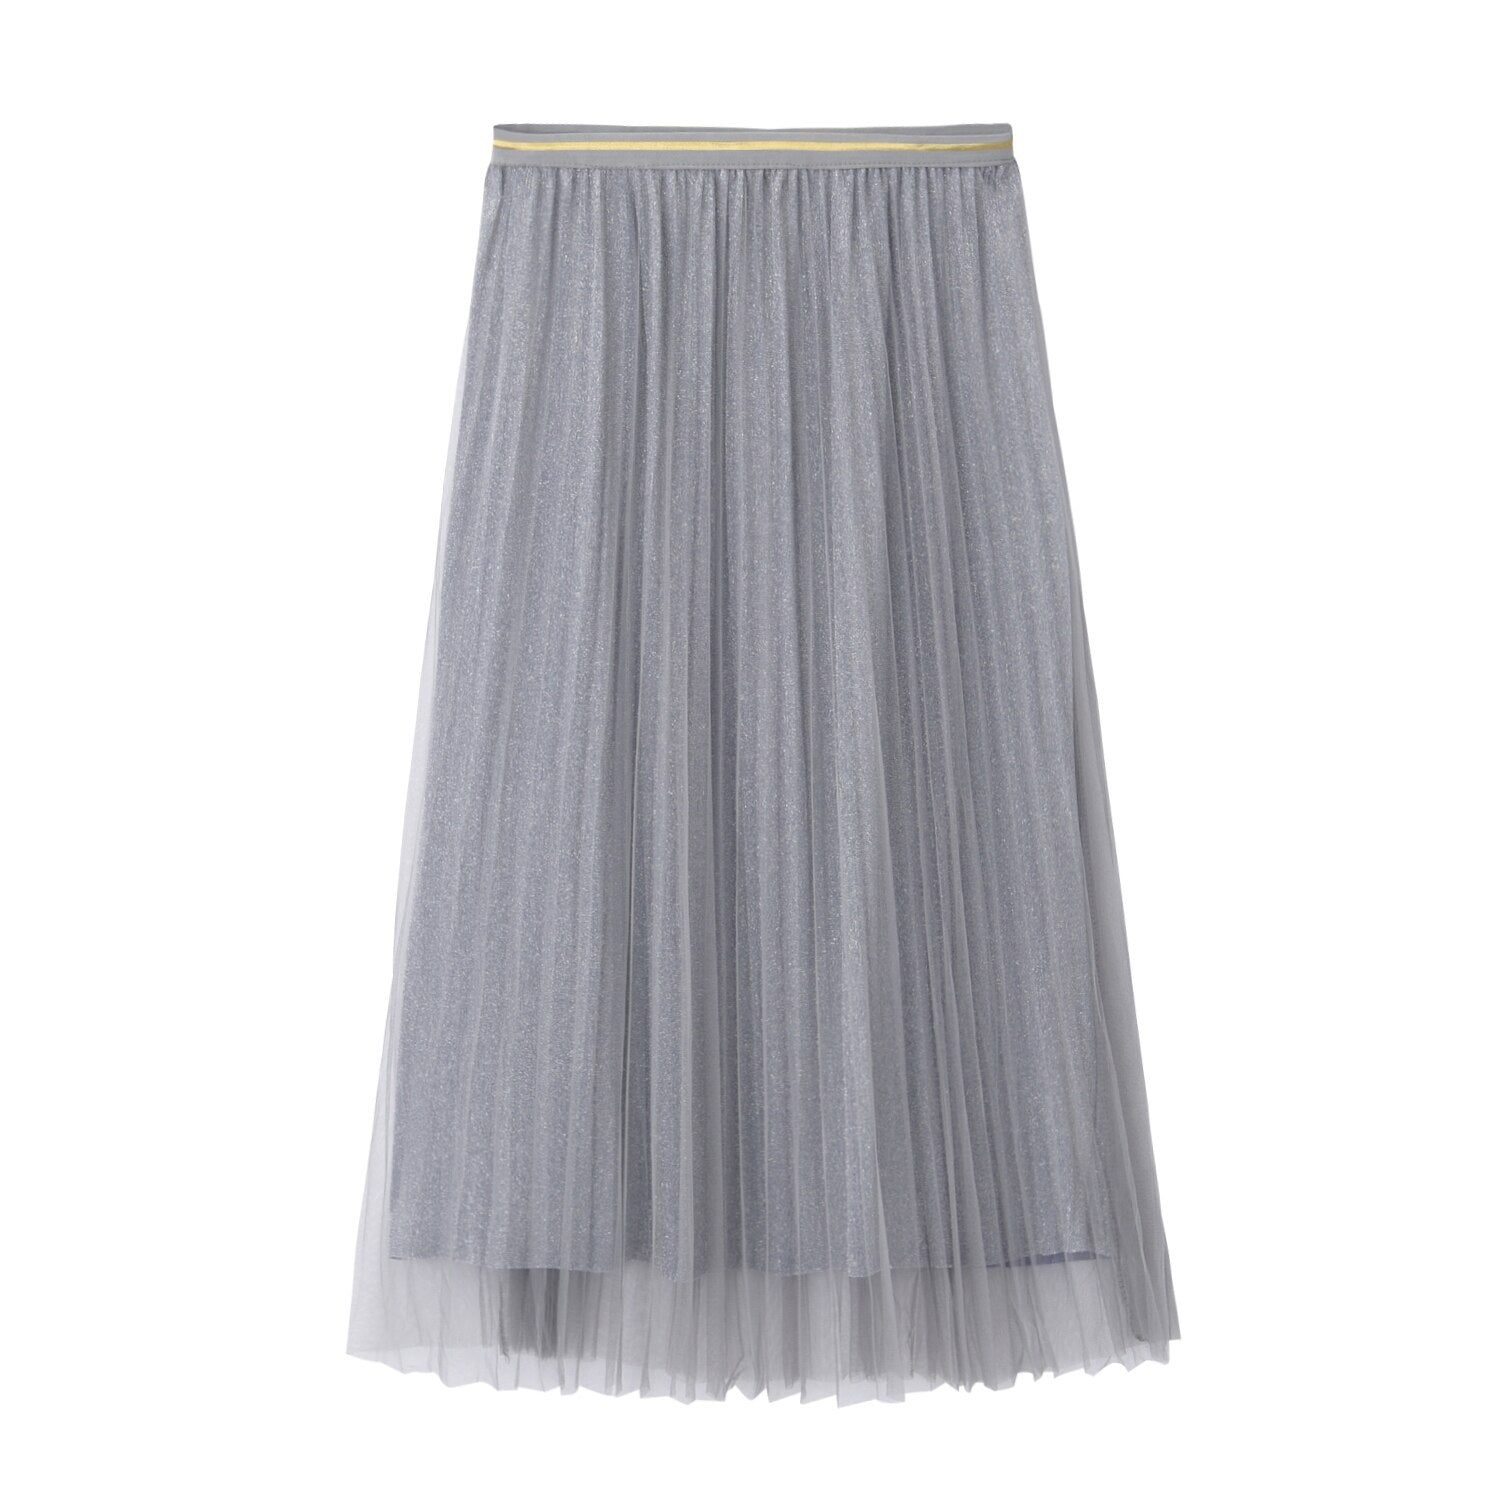 The Best Women Summer Lace Pleated Skirt OL Ladies Fashion Elastic Waist Knee Length Solid Casual Long Swing Skirt Hot Online - Source Silk